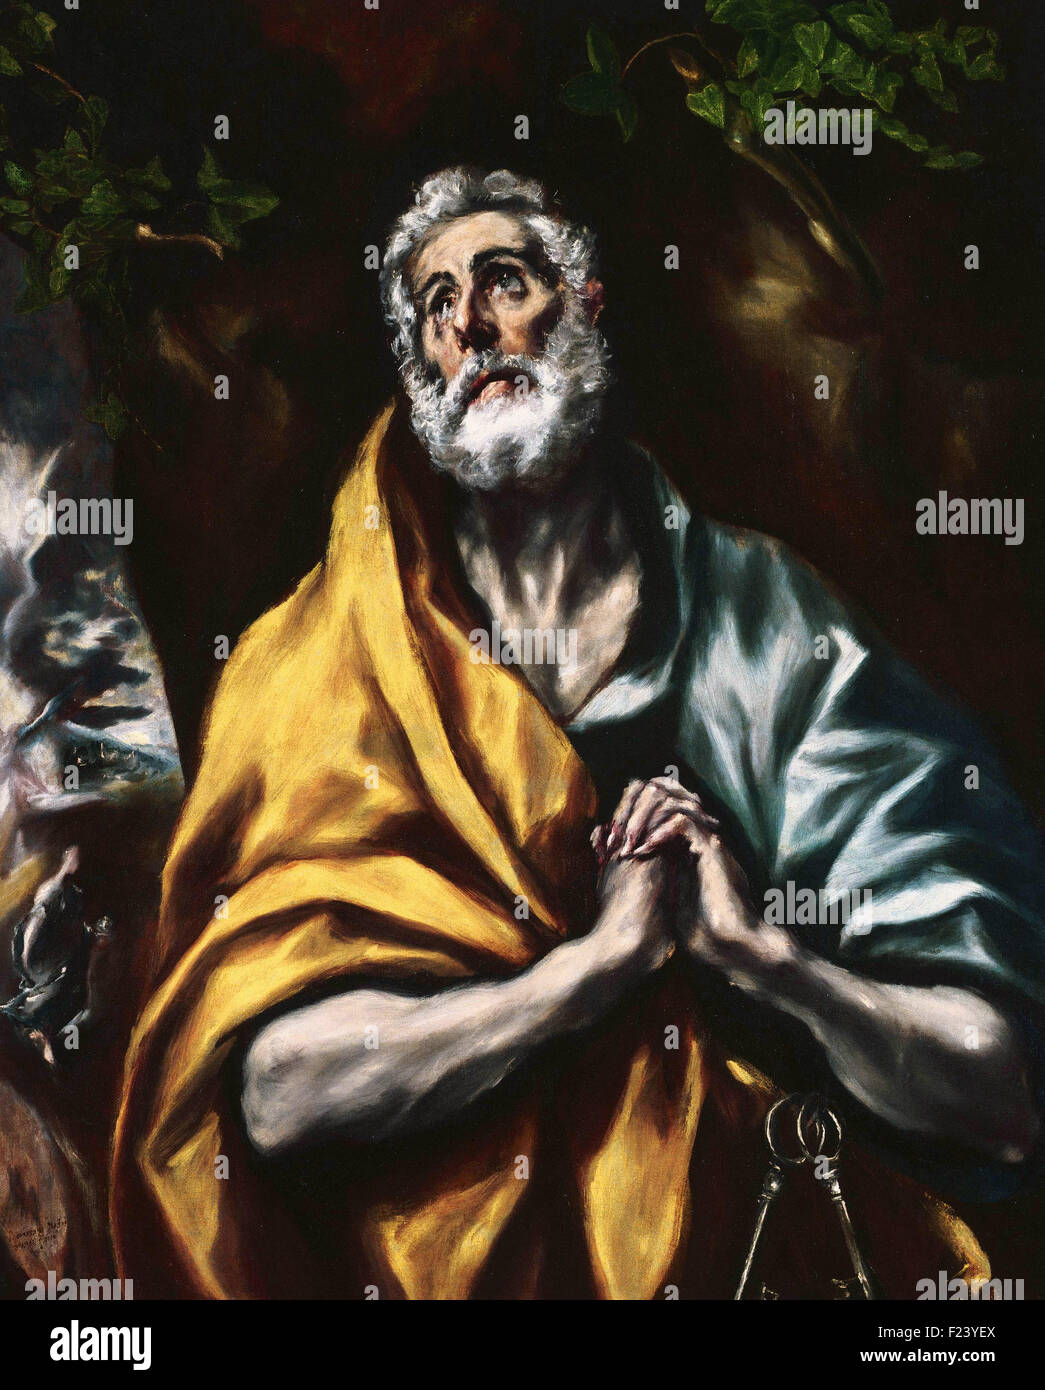 El Greco - The Repentant St. Peter - Stock Image